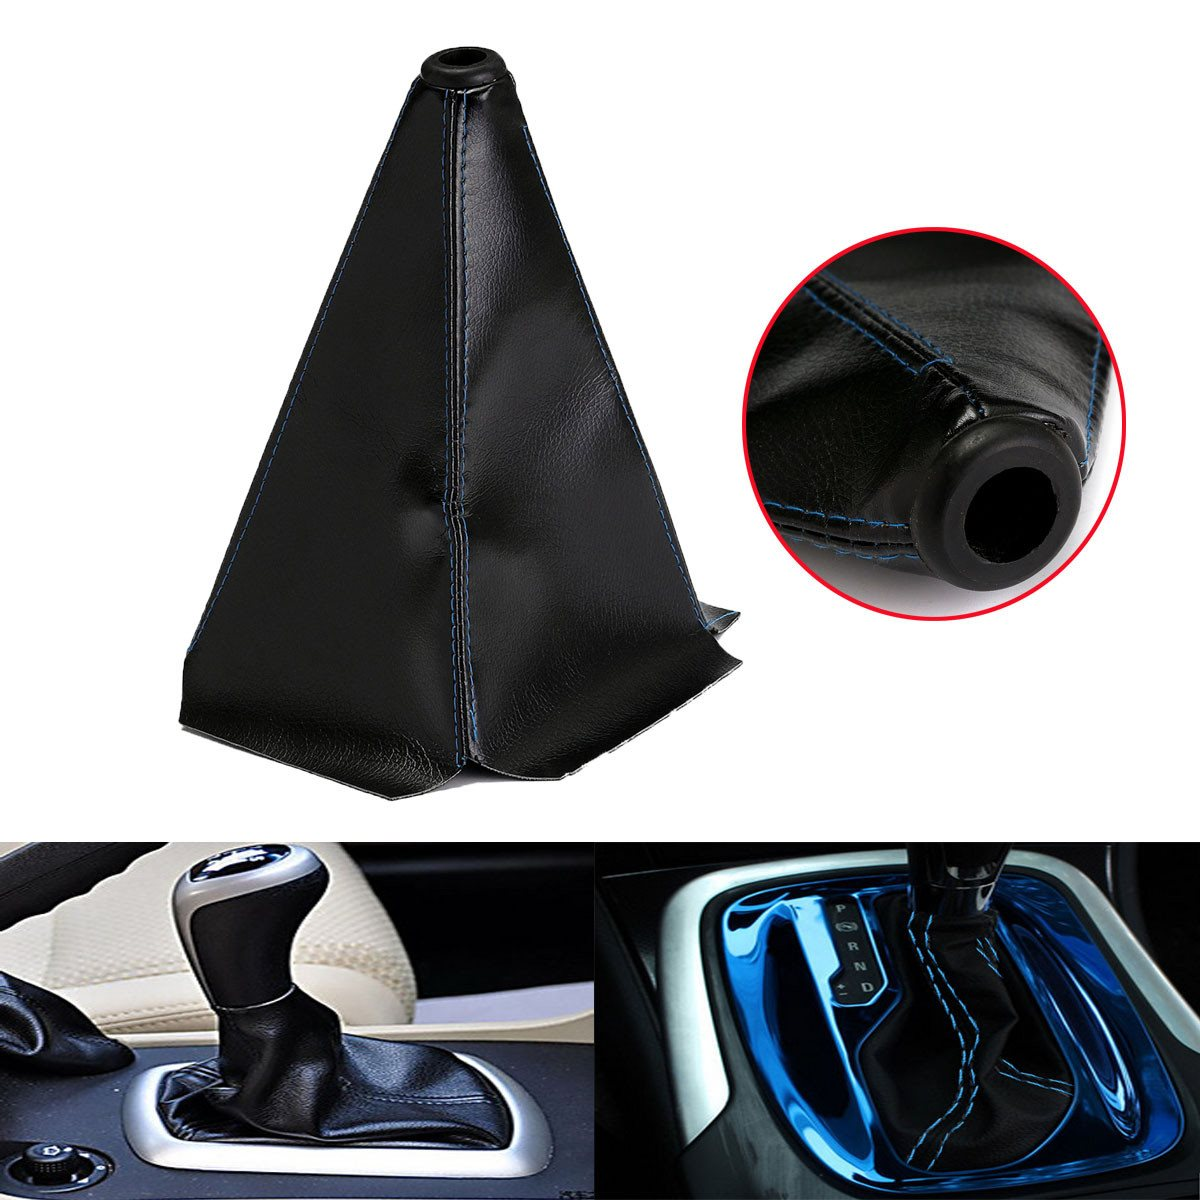 Universal Auto Car Gear Shift Boot Cover Blue Stitch Black PVC Leather Manual Shifter Gear Shift Collars